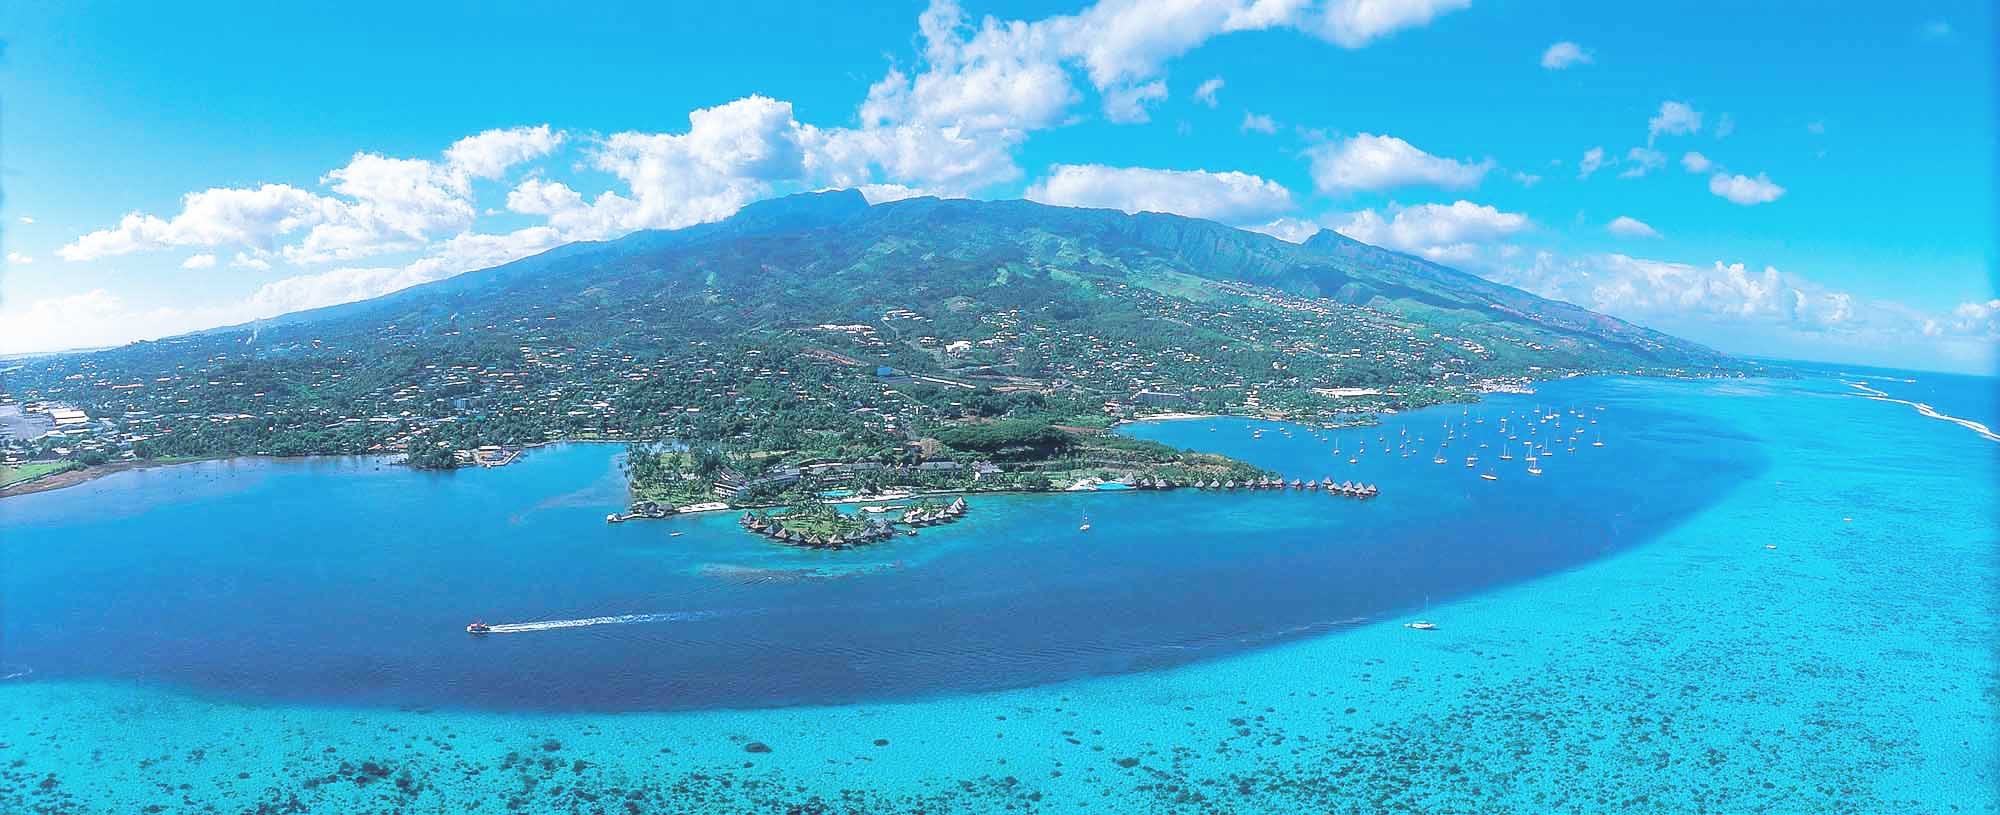 """Tahiti, known as """"The Queen of the Pacific,"""" is the largest and most populous of the 130 islands in French Polynesia"""